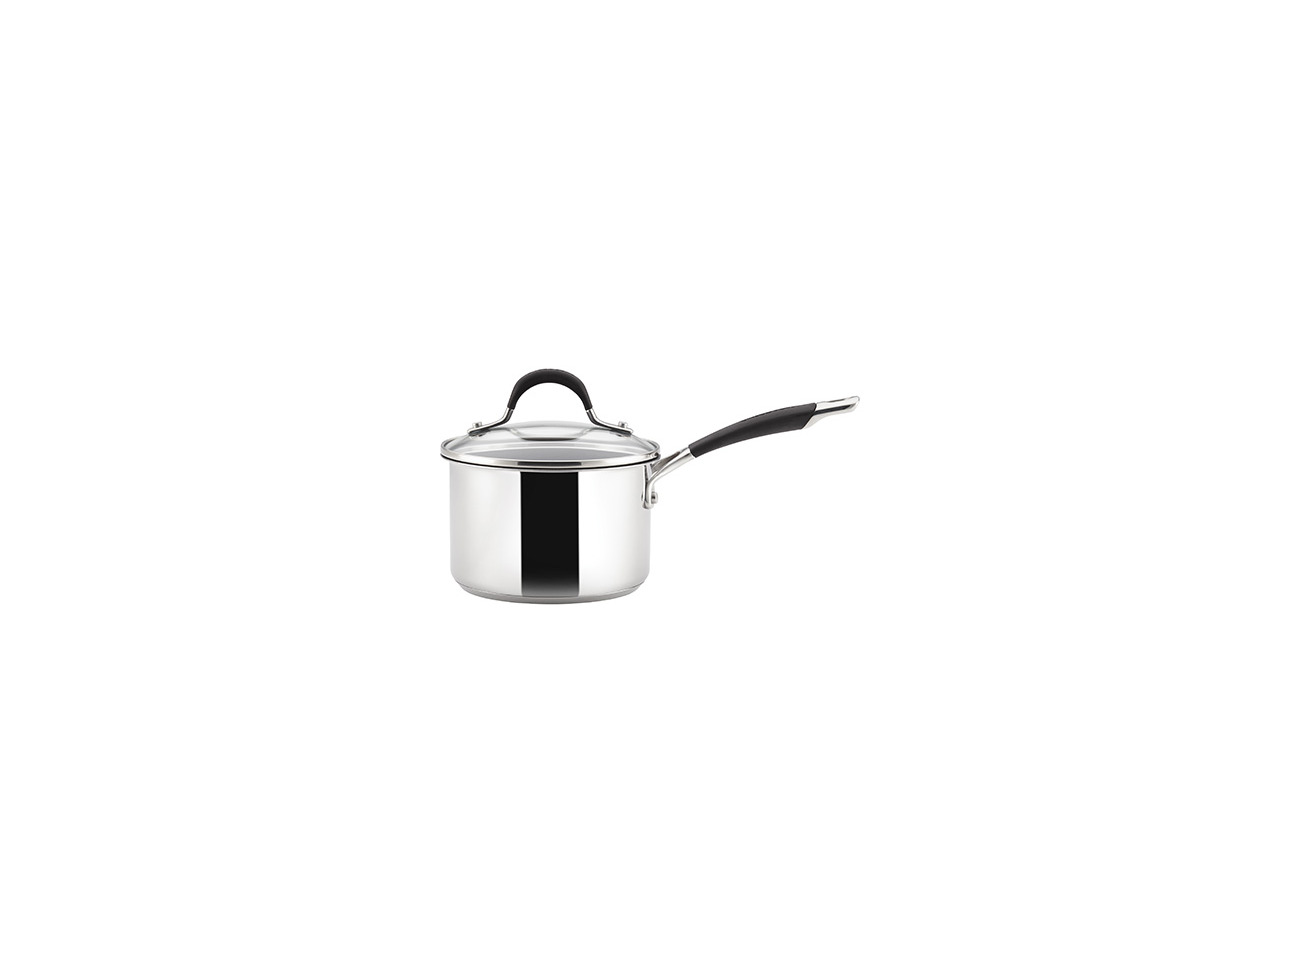 Stainless Steel Frying Pan Circulon 25cm Total Non Stick Momentum Induction Suitable